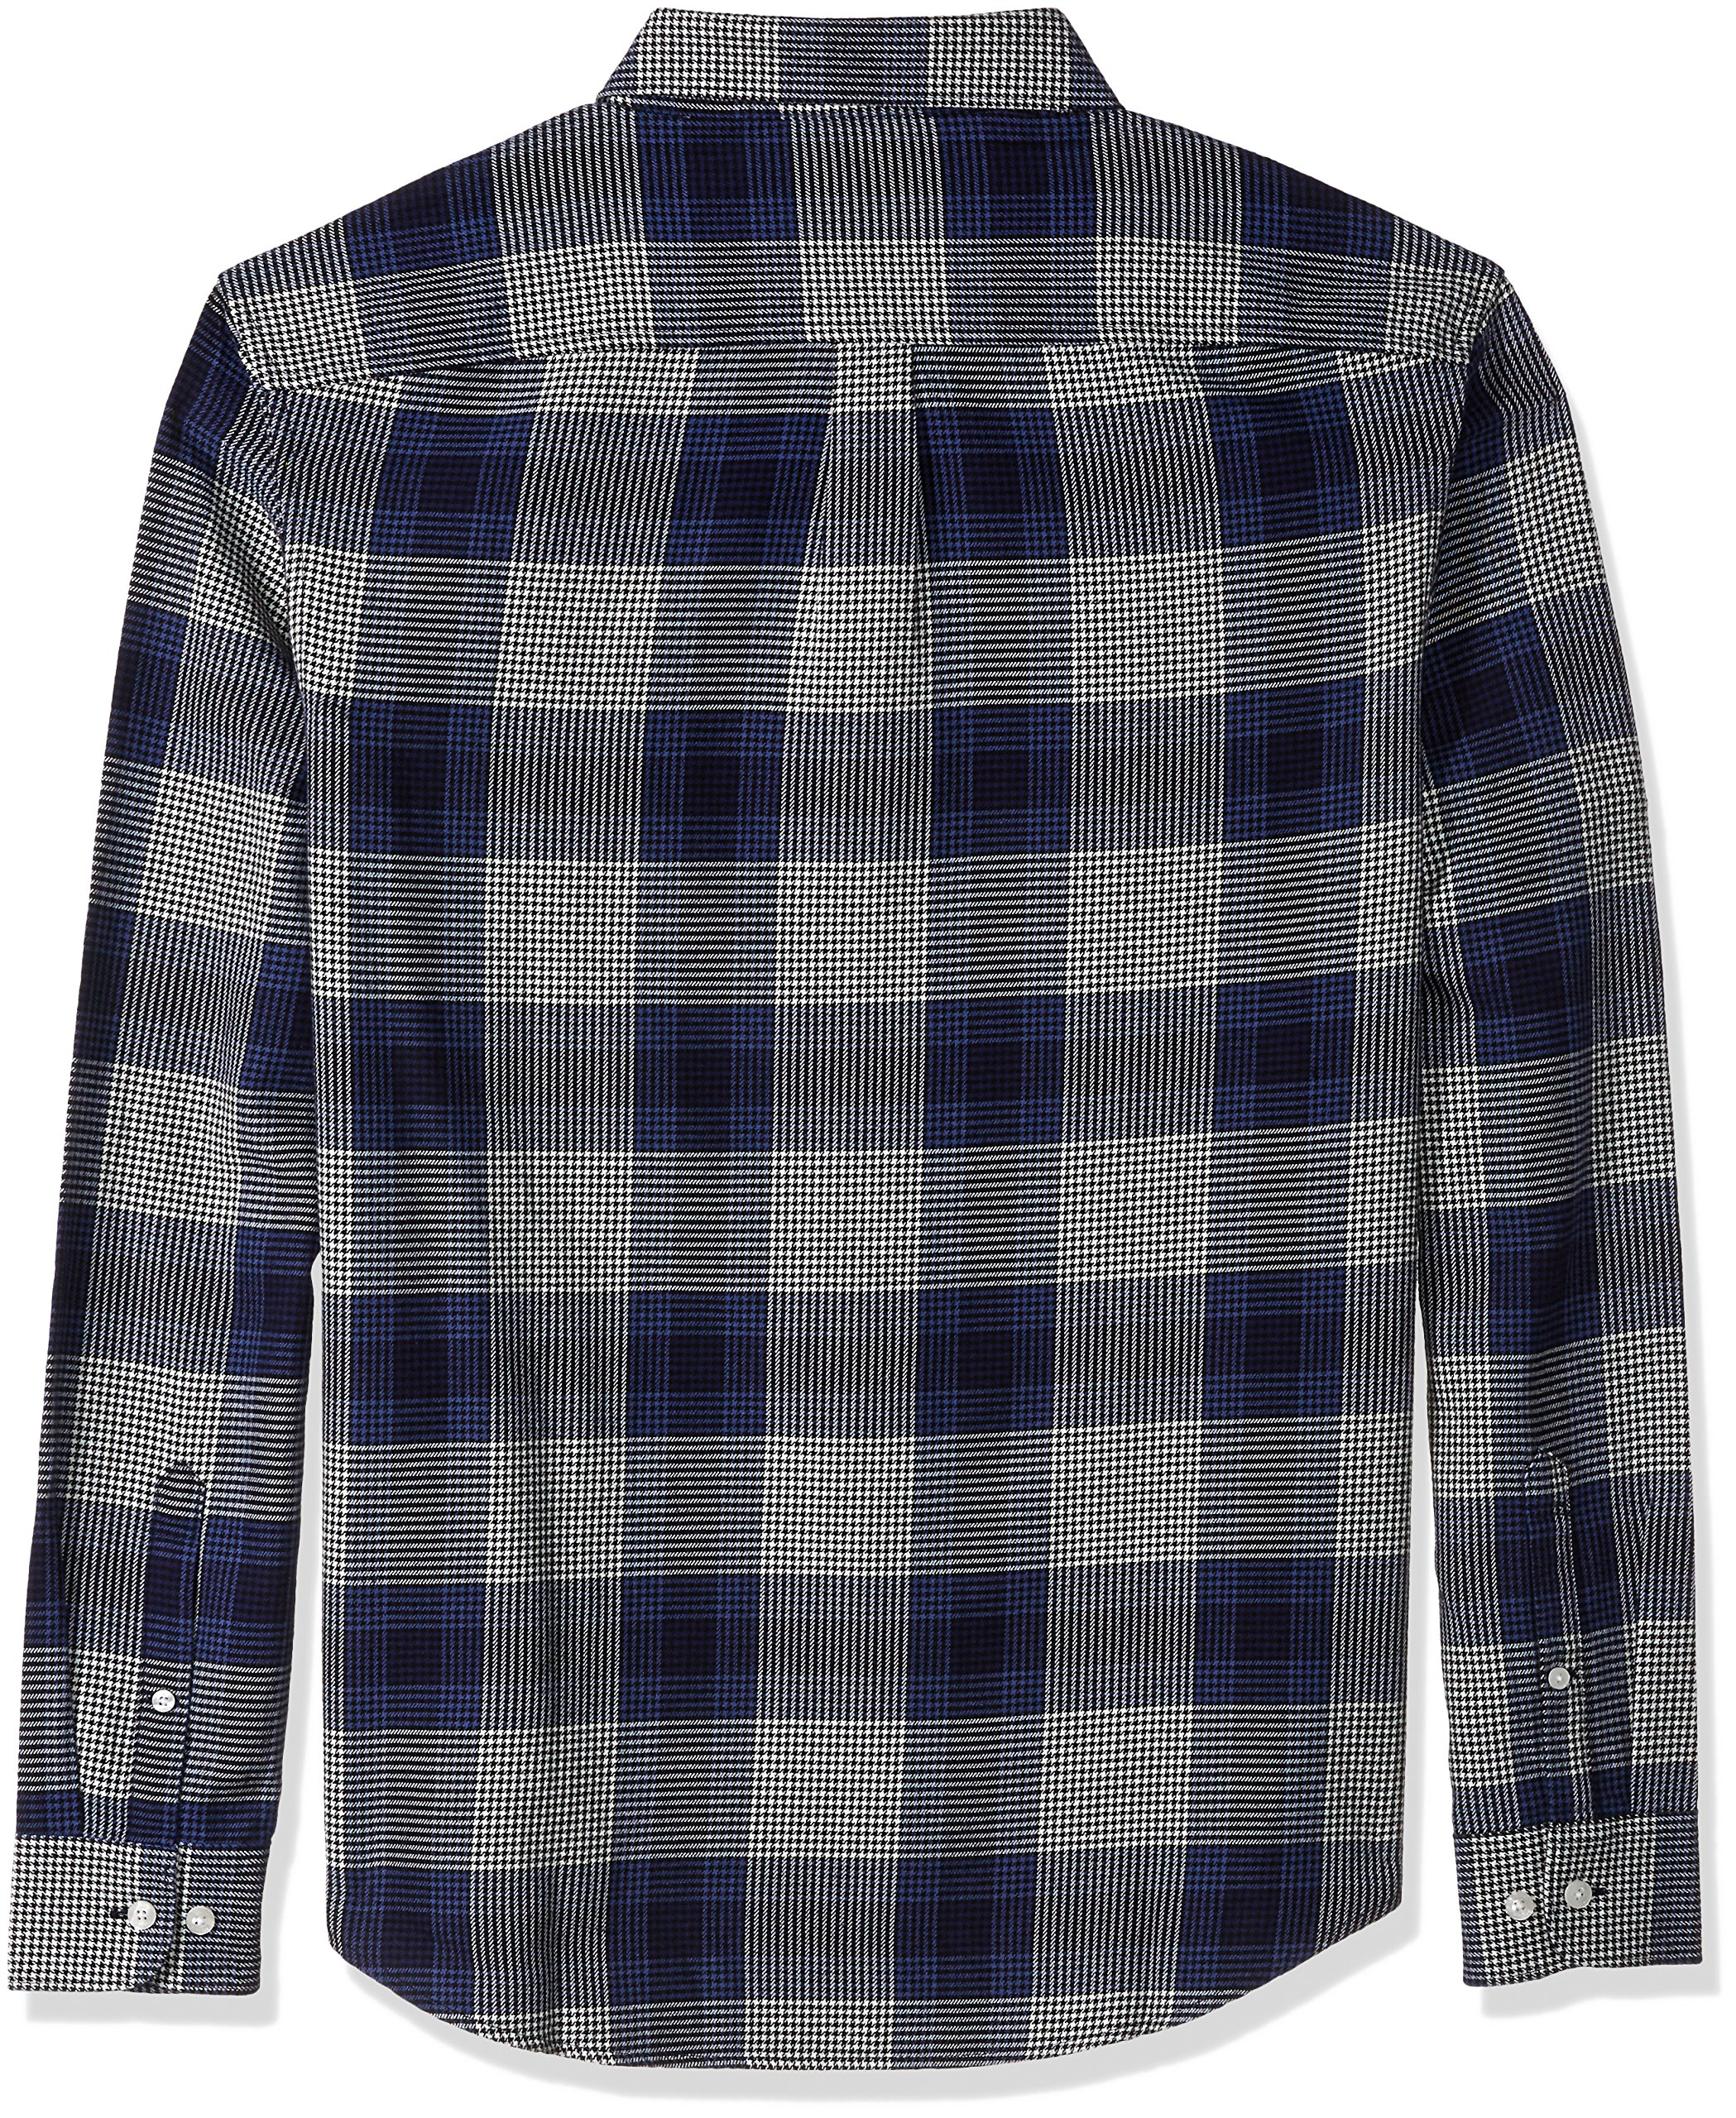 Original Penguin Men's Brushed Plaid Flannel Dress Shirt, Snorkel Blue, Large by Original Penguin (Image #2)